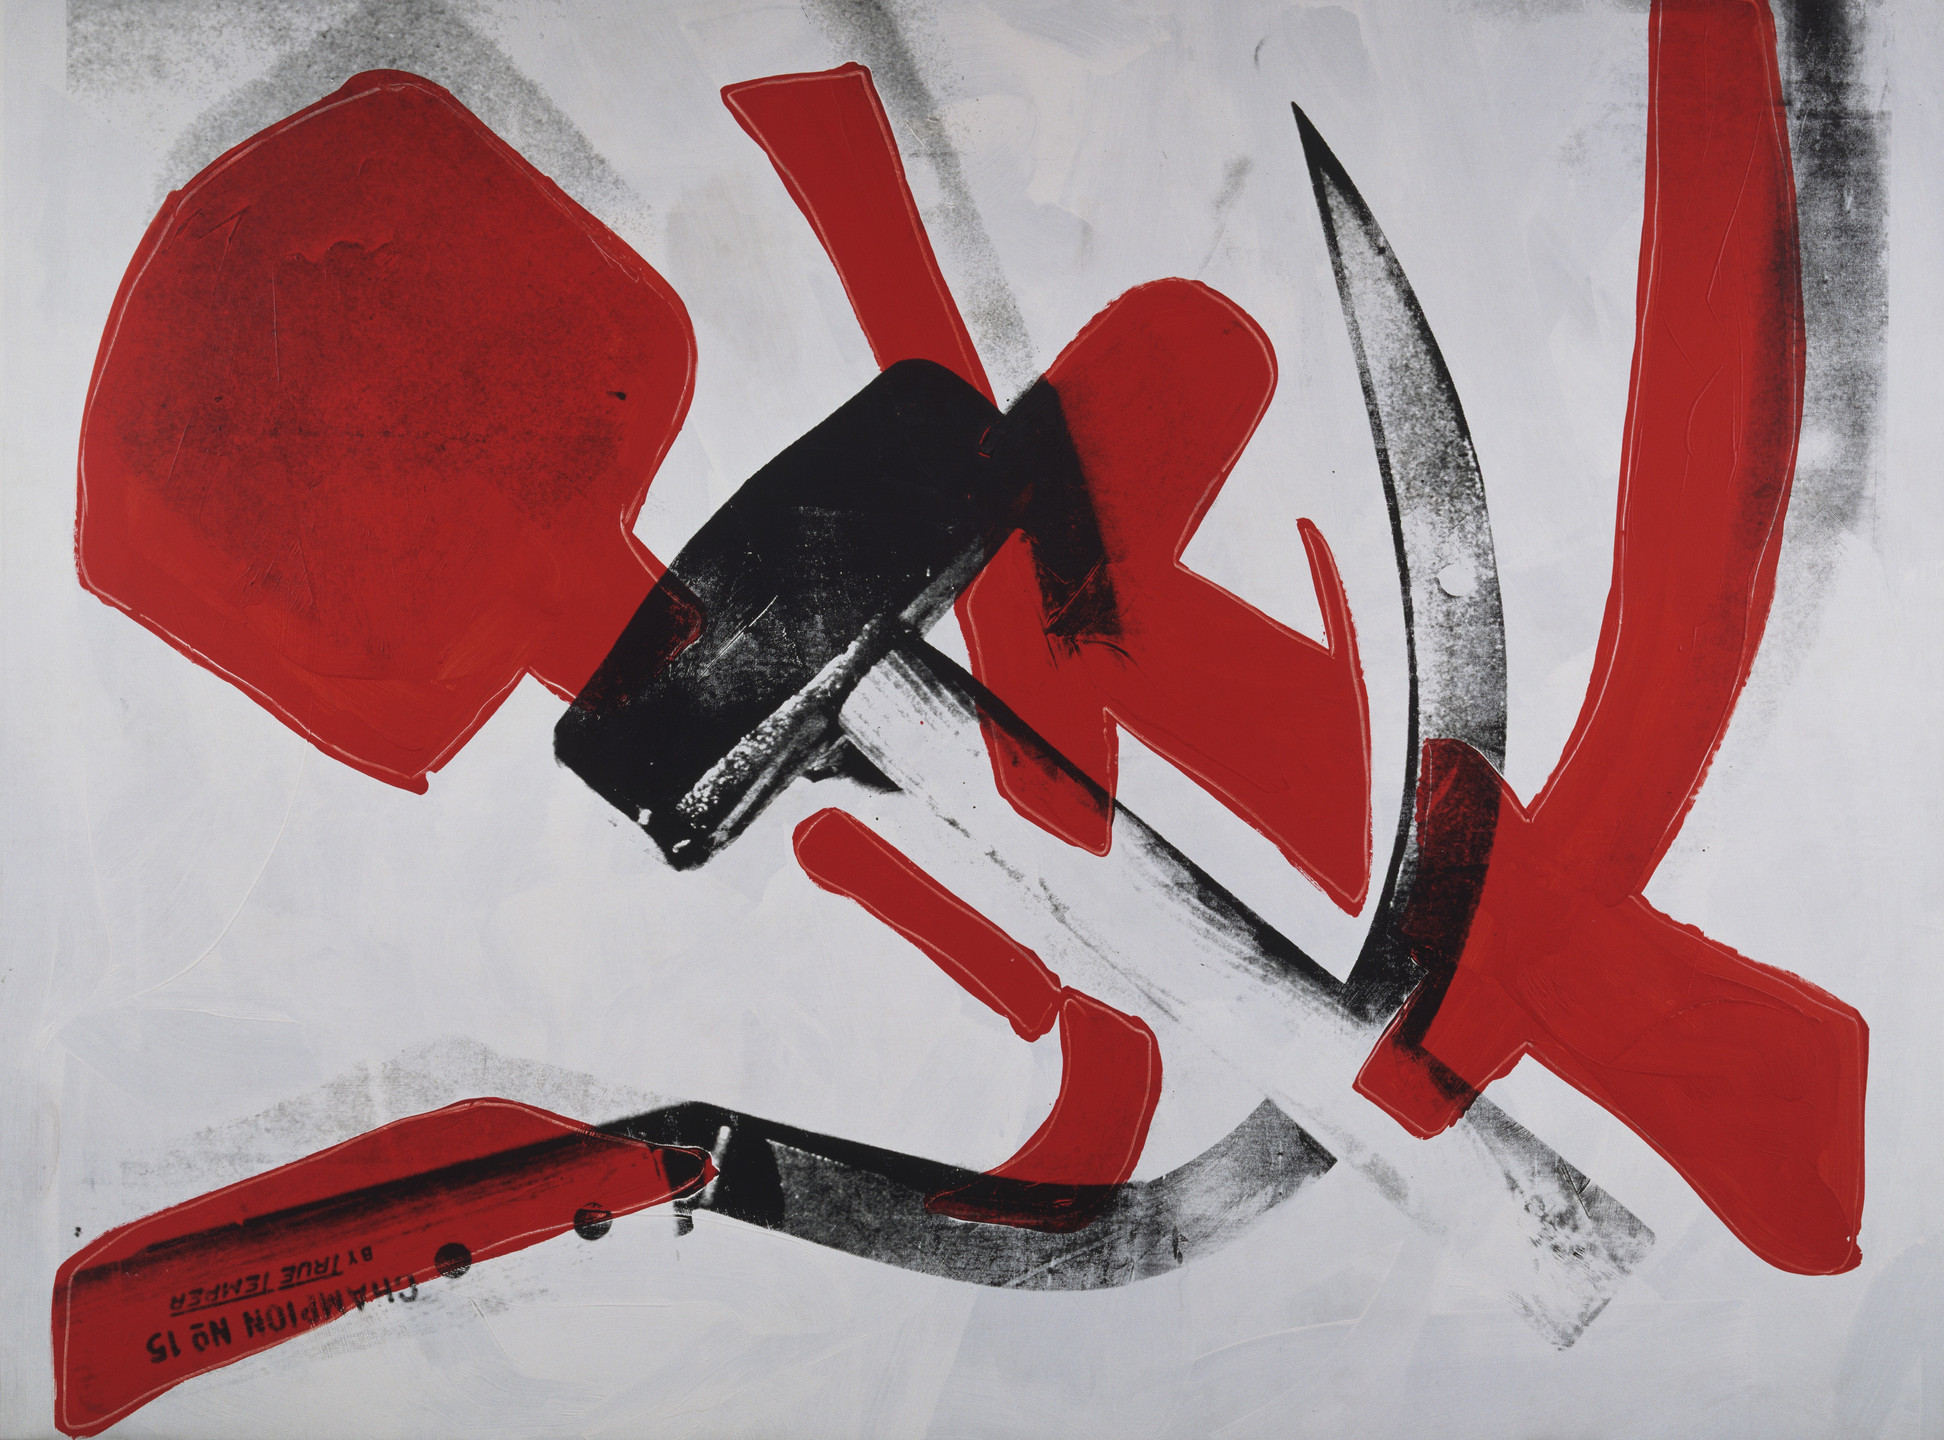 Andy Warhol. Hammer and Sickle. 1976